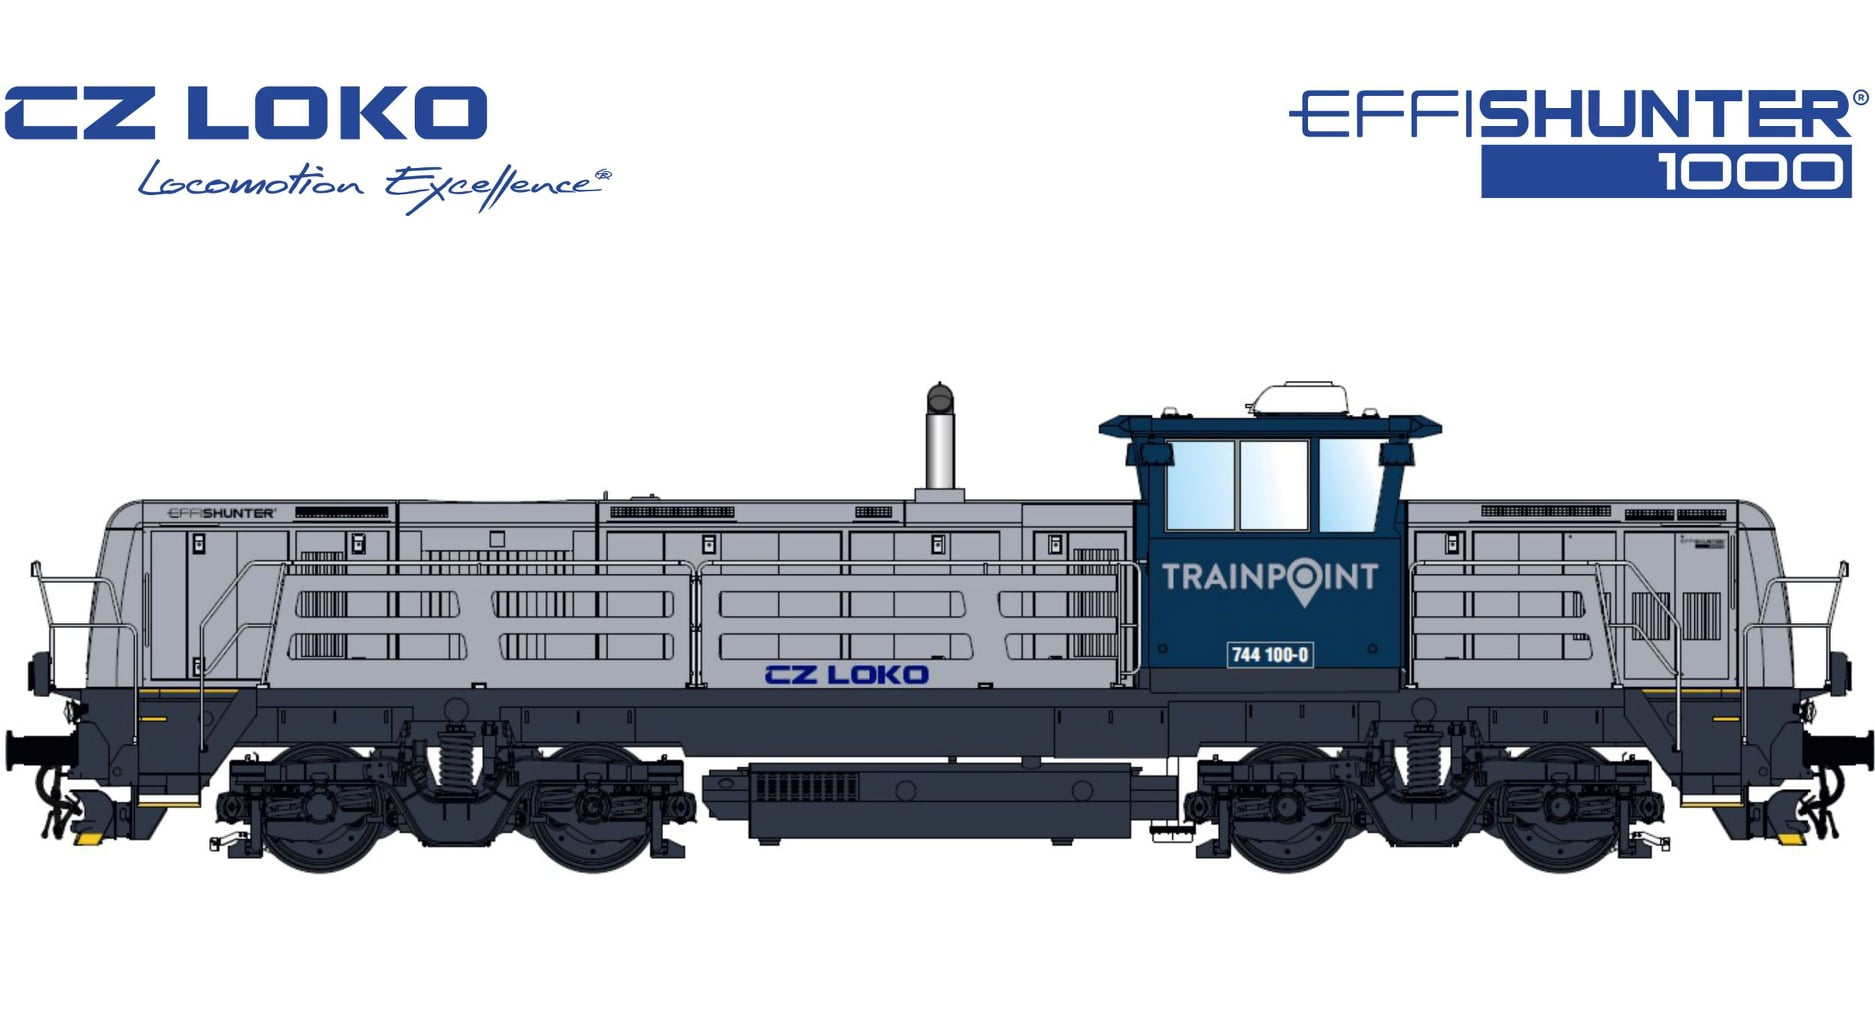 CZ LOKO EffiShunter 1000 in Trainpoint Norway livery